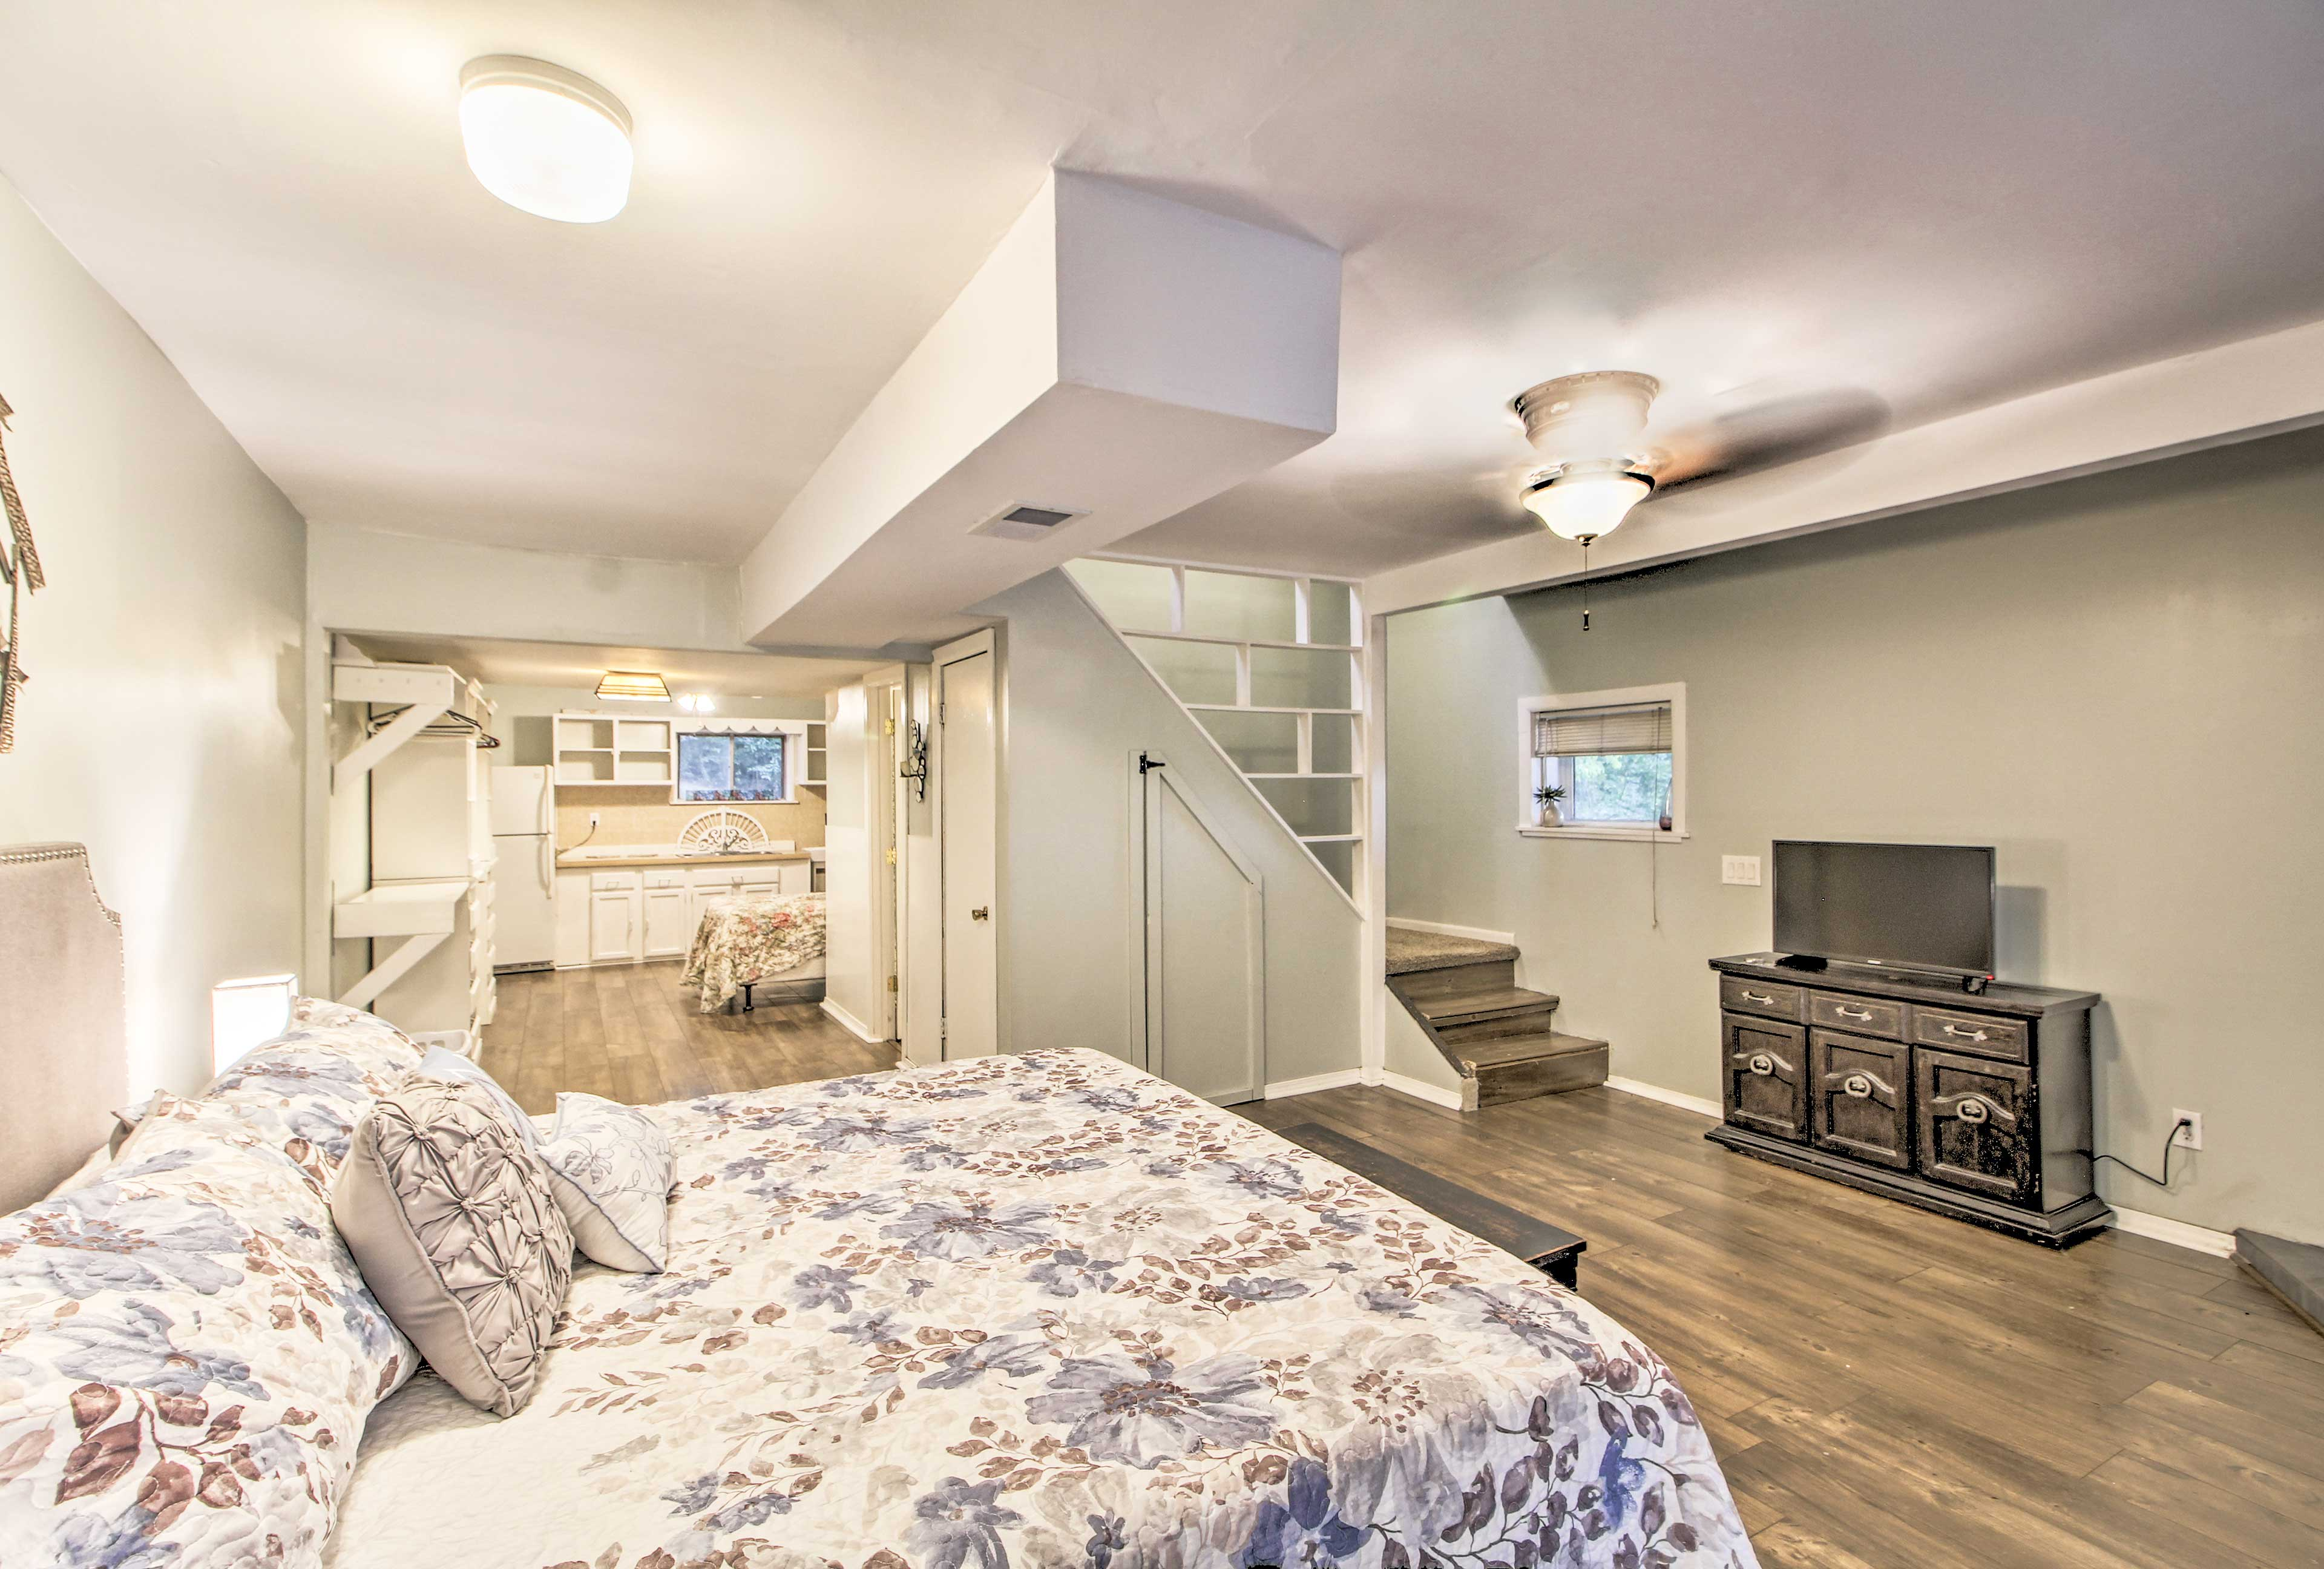 The master bedroom opens up into another kitchenette with a full bed.